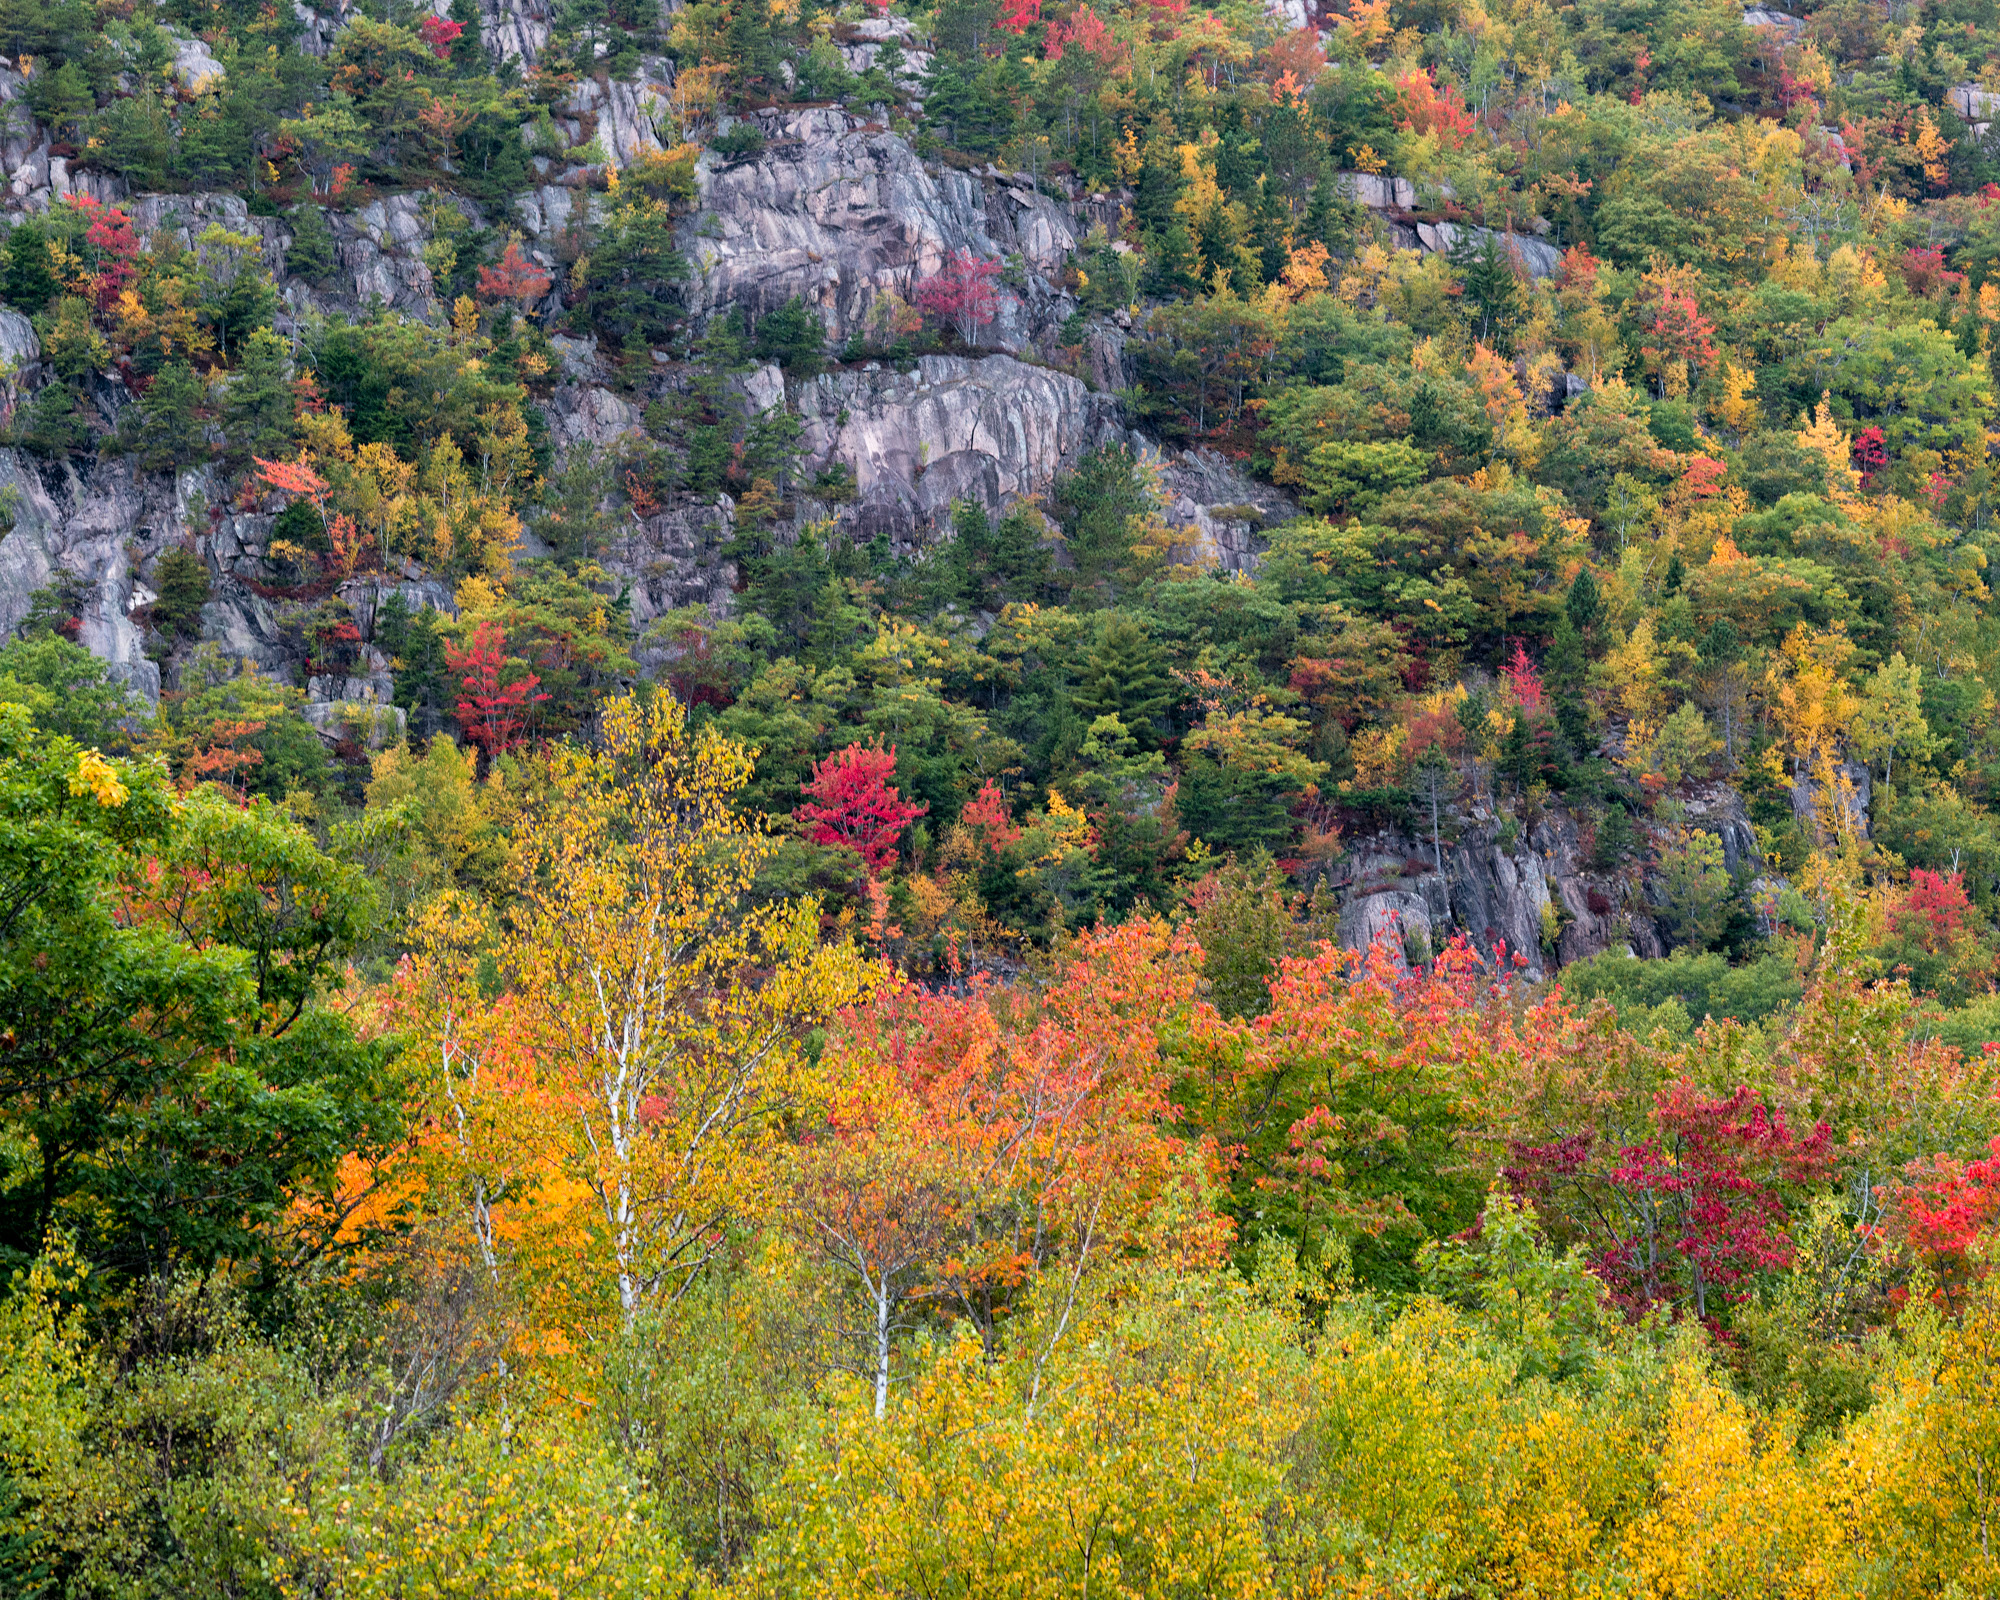 Dappled Autumn Foliage, The Precipice, Acadia National Park, Maine